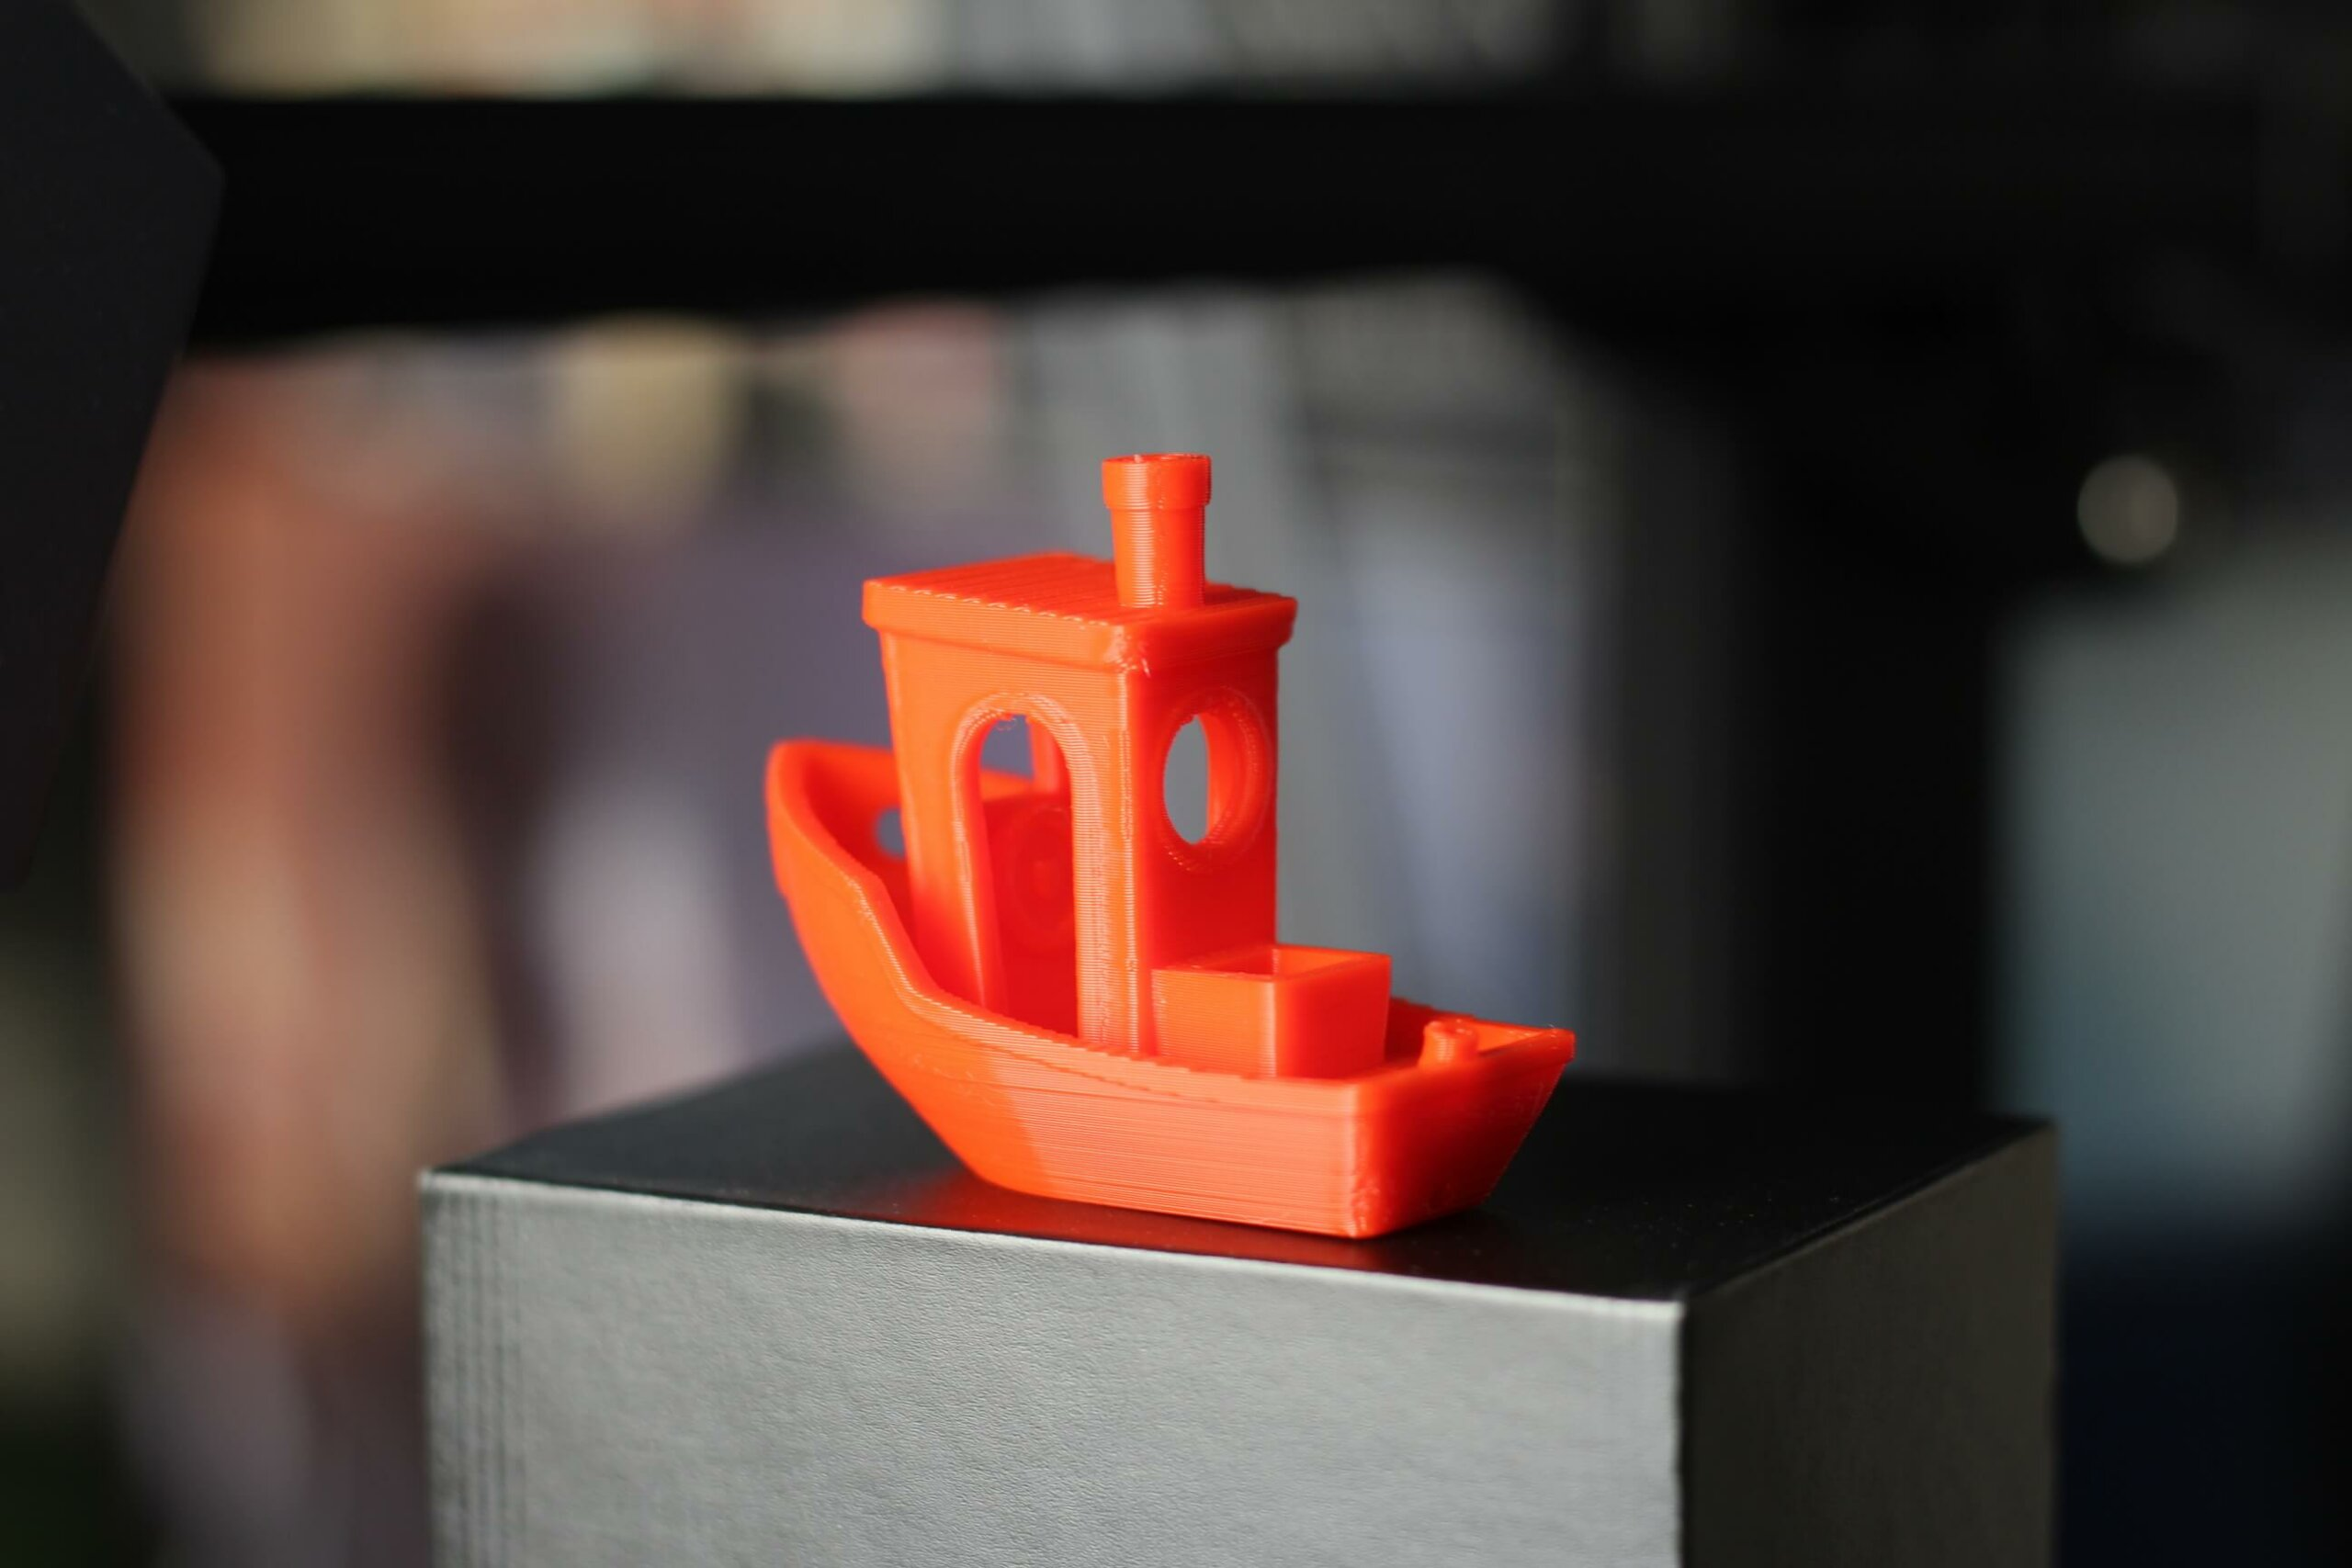 NF-Zone-Benchy-printed-fanless-at-210C-4